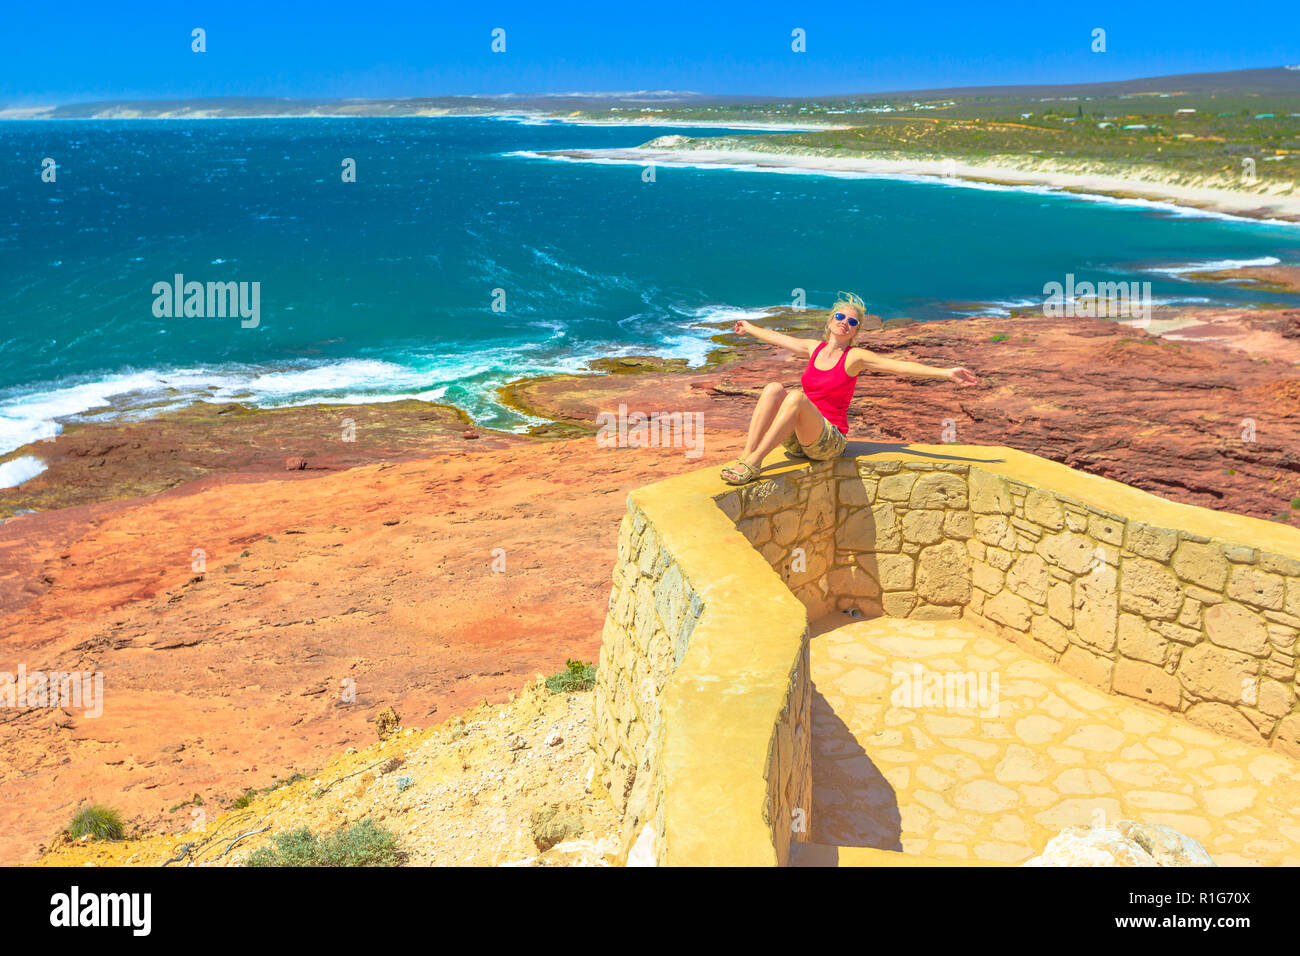 Carefree woman at Red Bluff in Kalbarri National Park. Pederick Lookout overlooking Red Bluff Beach in Australian Coral Coast on Indian Ocean. Sunny with blue sky. Western Australia coastal lookout. - Stock Image